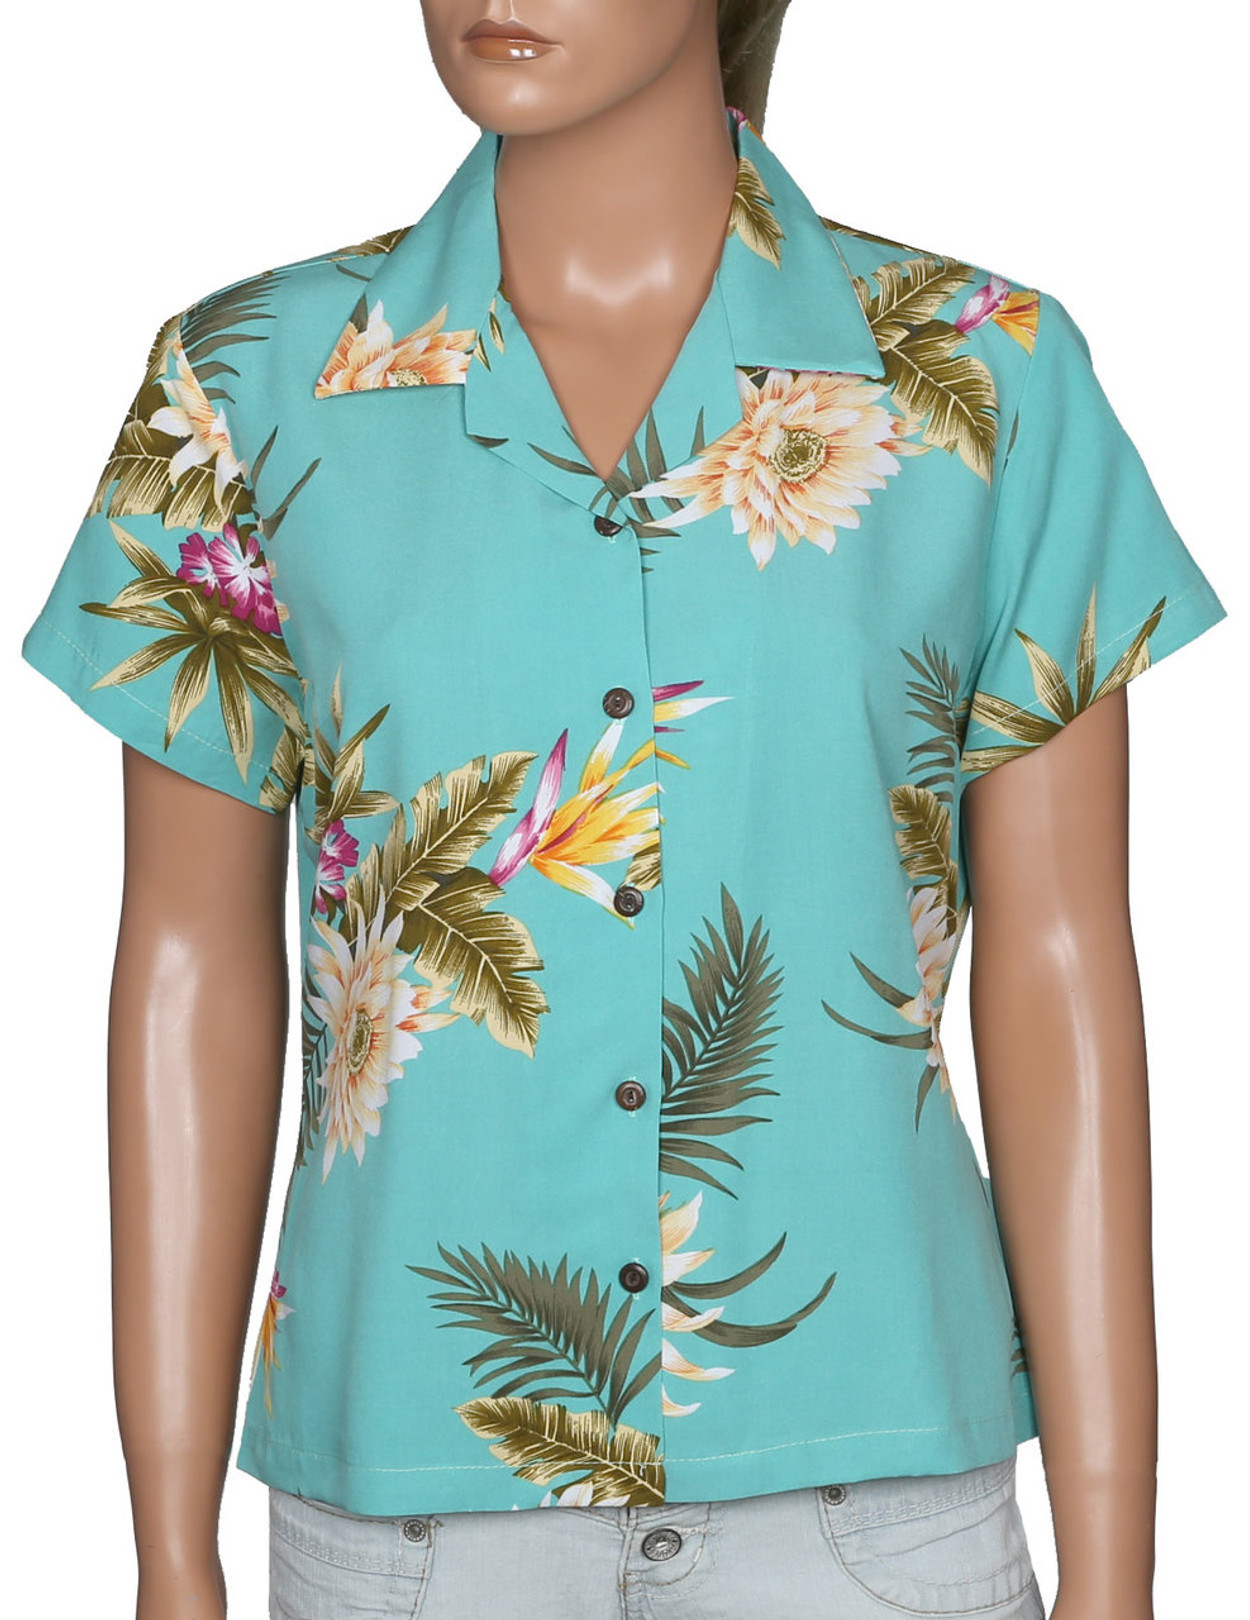 07515a741e8b4d Island Ceres Women Hawaiian Rayon Blouse 100% Rayon Soft Fabric Coconut  shell buttons Color: